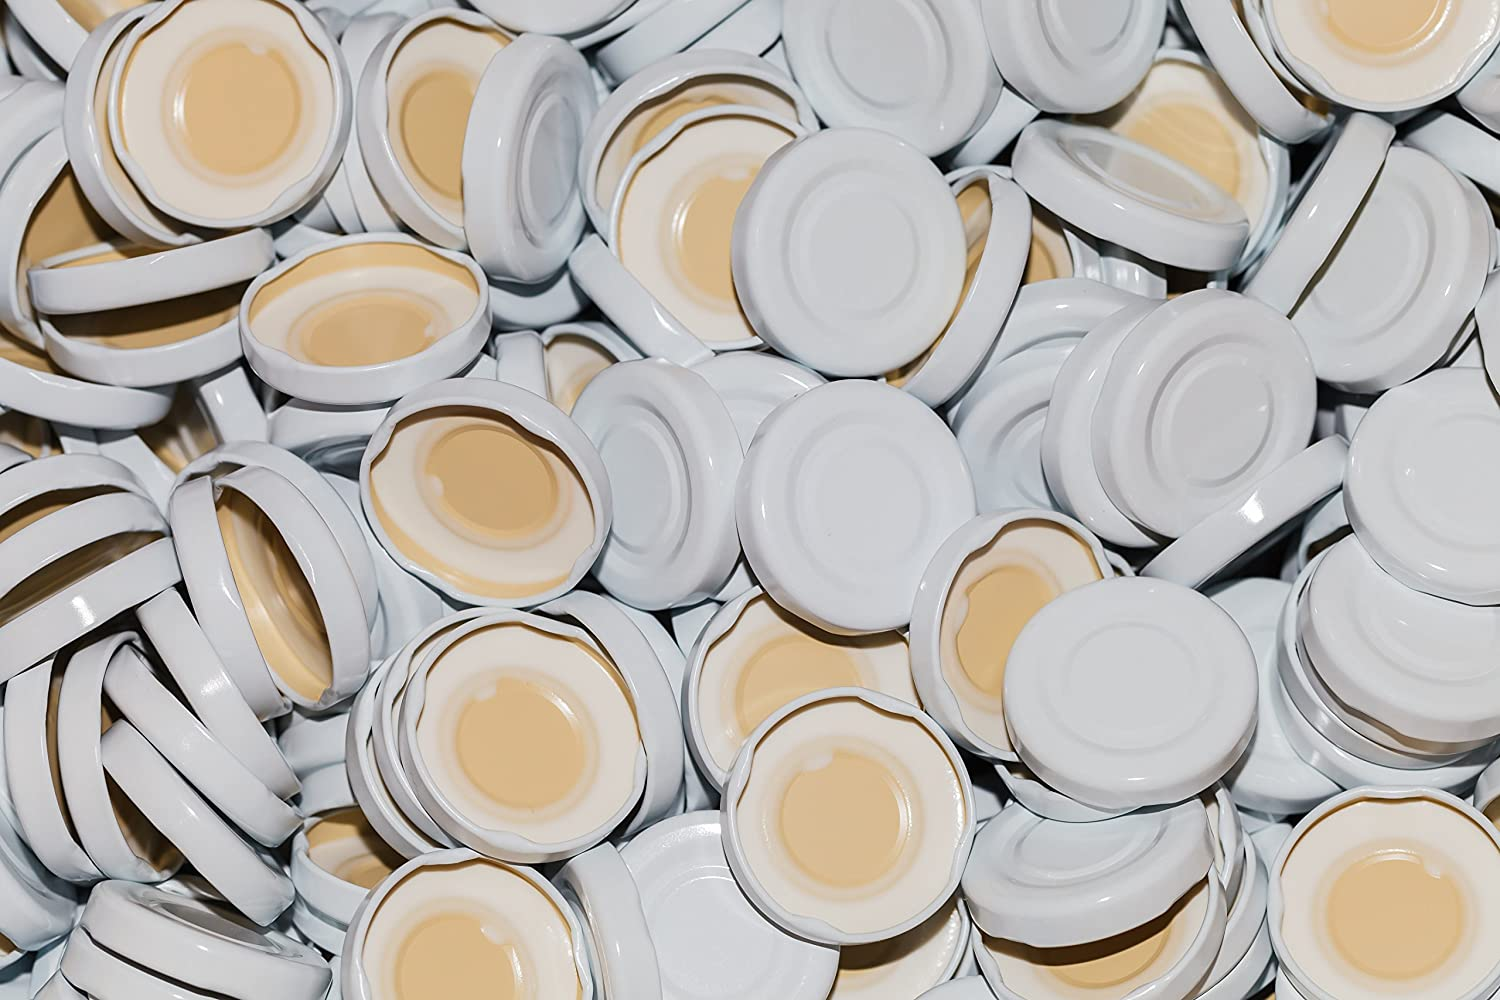 15, 25, 50 or 75 piece White Twist-Off Lids TO43 mm for our 0.2 & 0.25L Bottle Milk Bottle Lid cap cover (15 piece) SLK GmbH